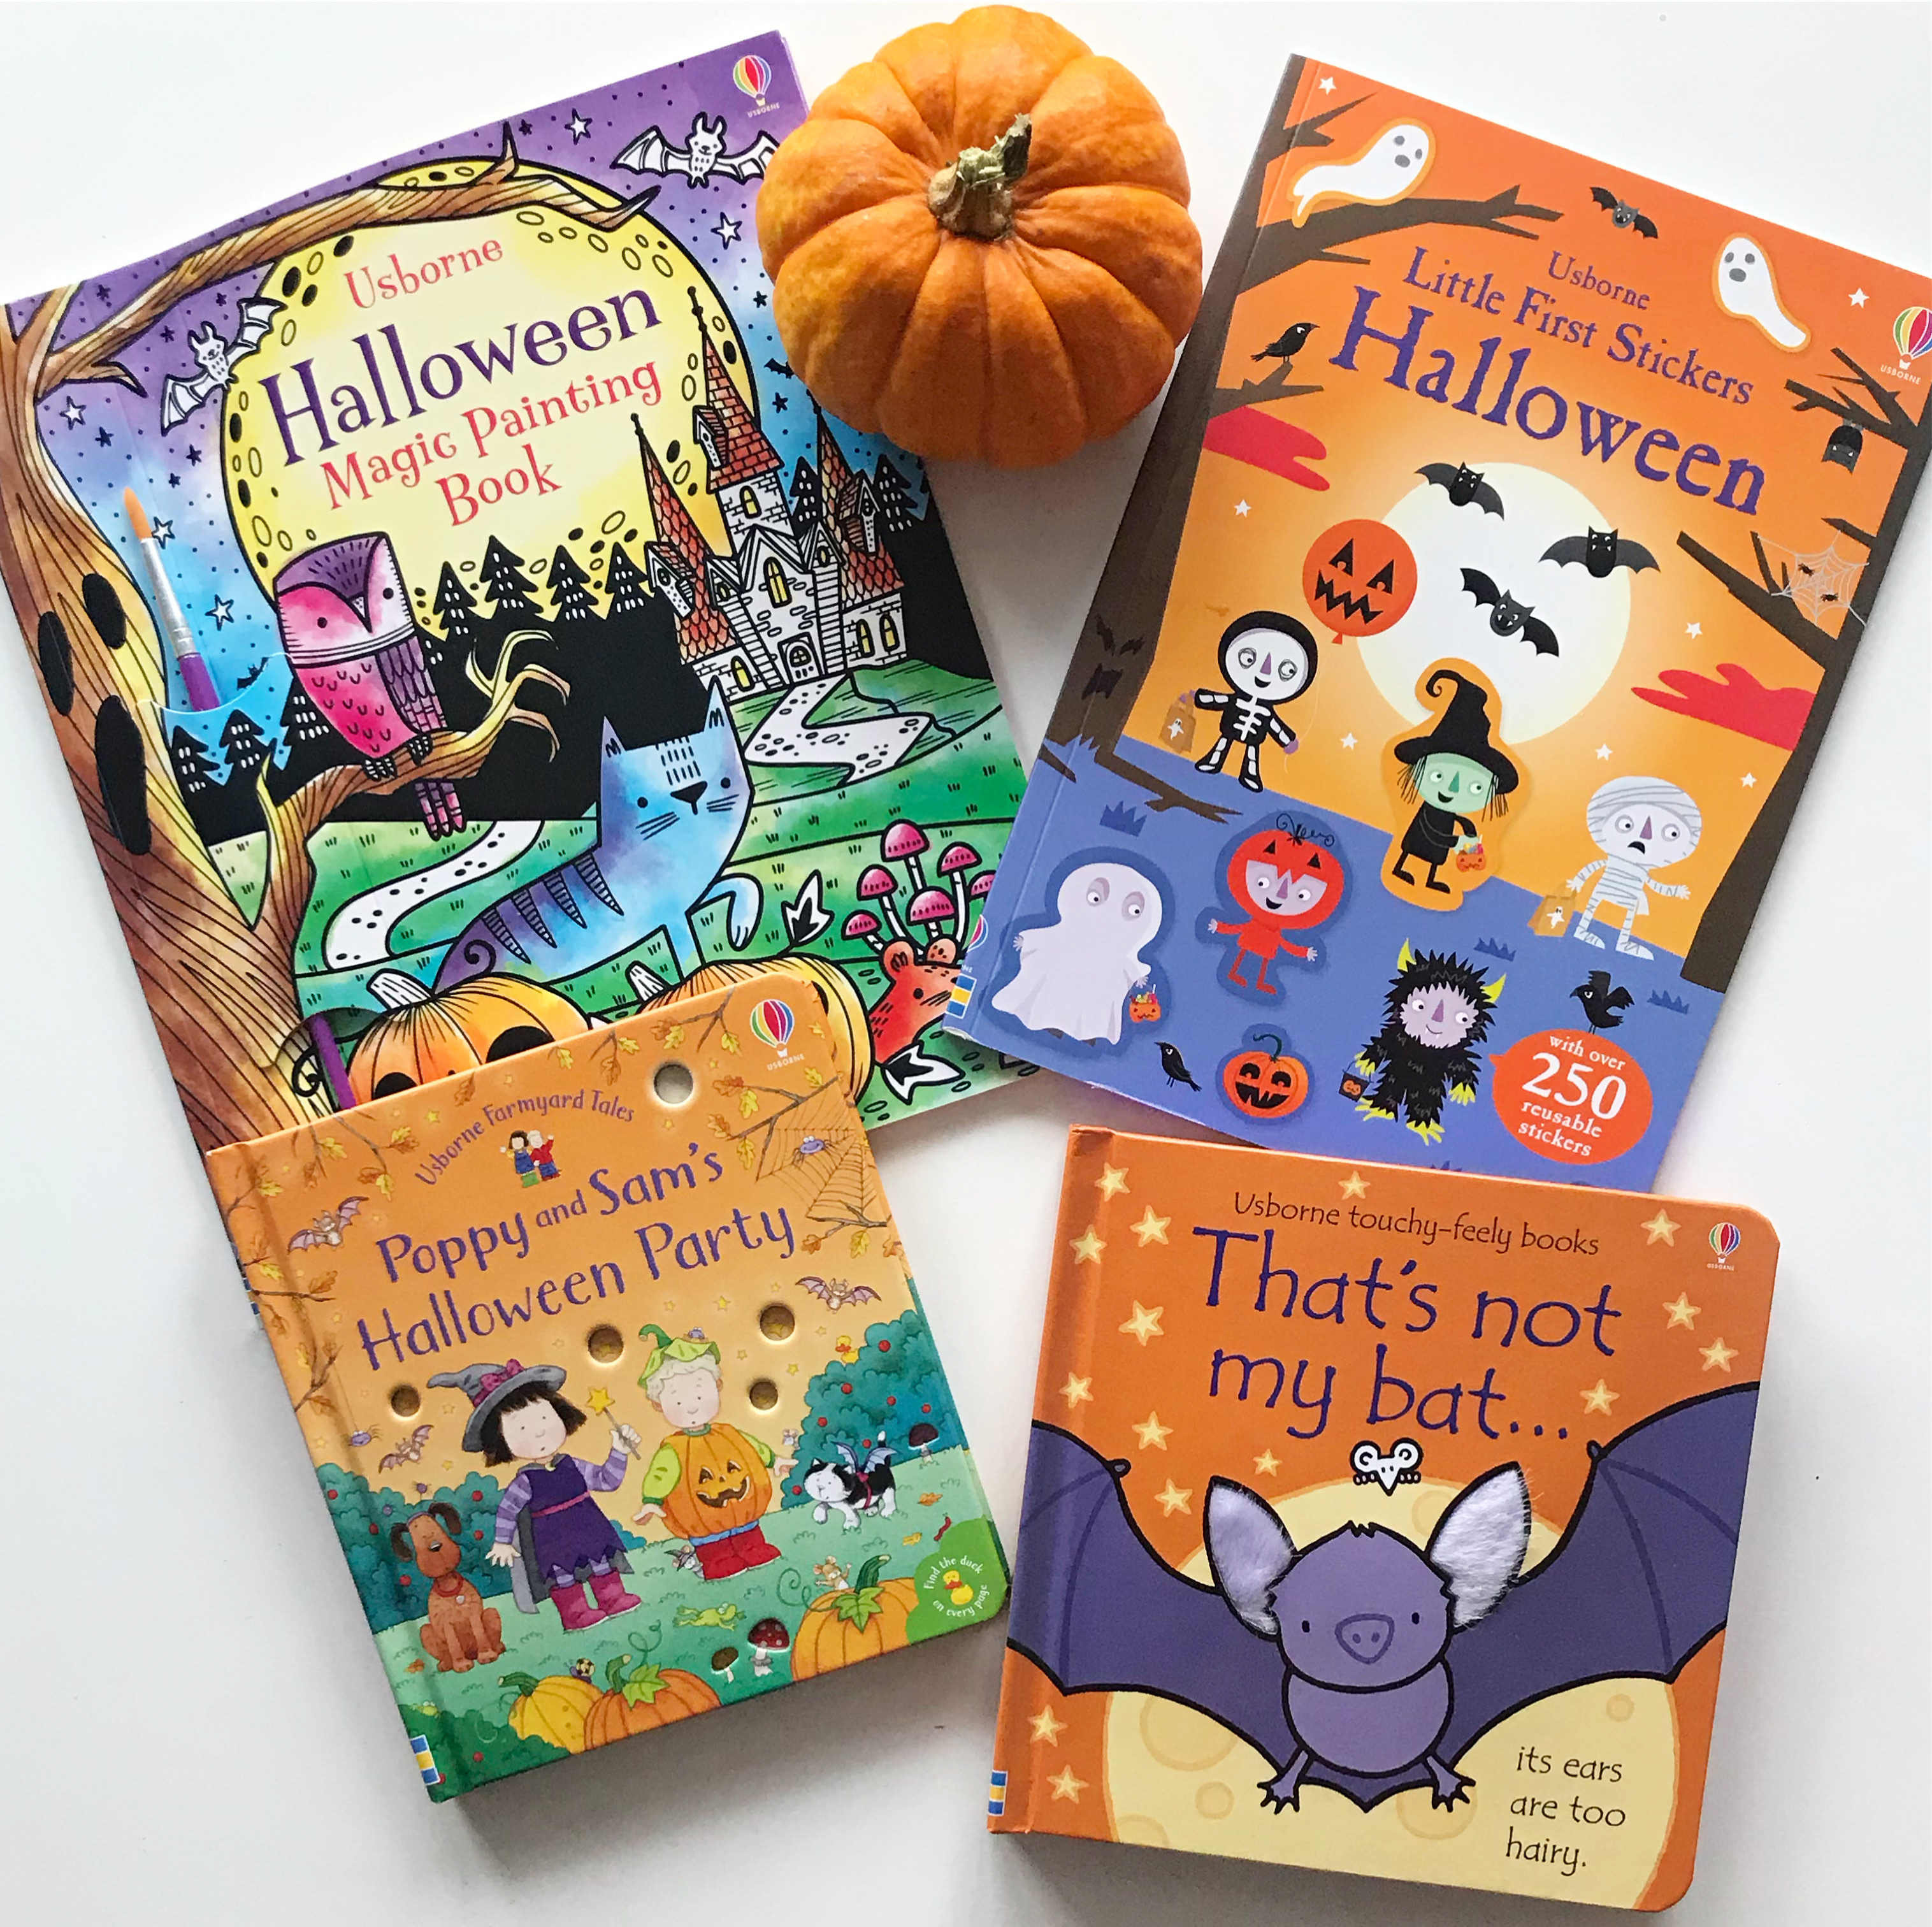 usborne book bundle review on Mammafilz.com